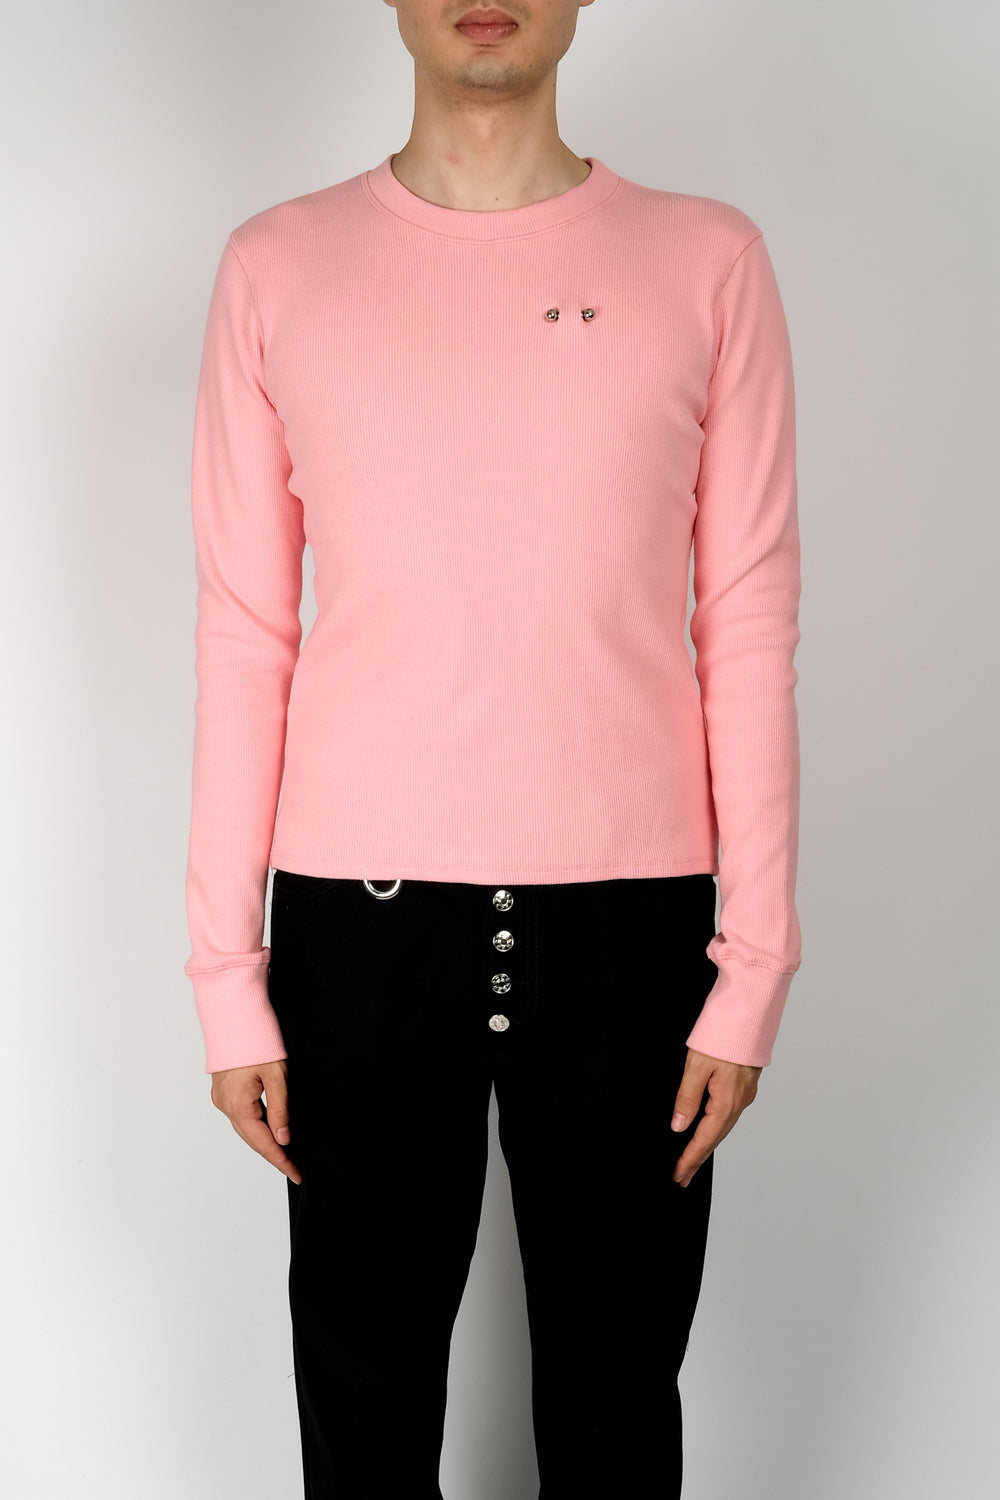 Linder Bosie L/S Piercing Detail Top In Pink